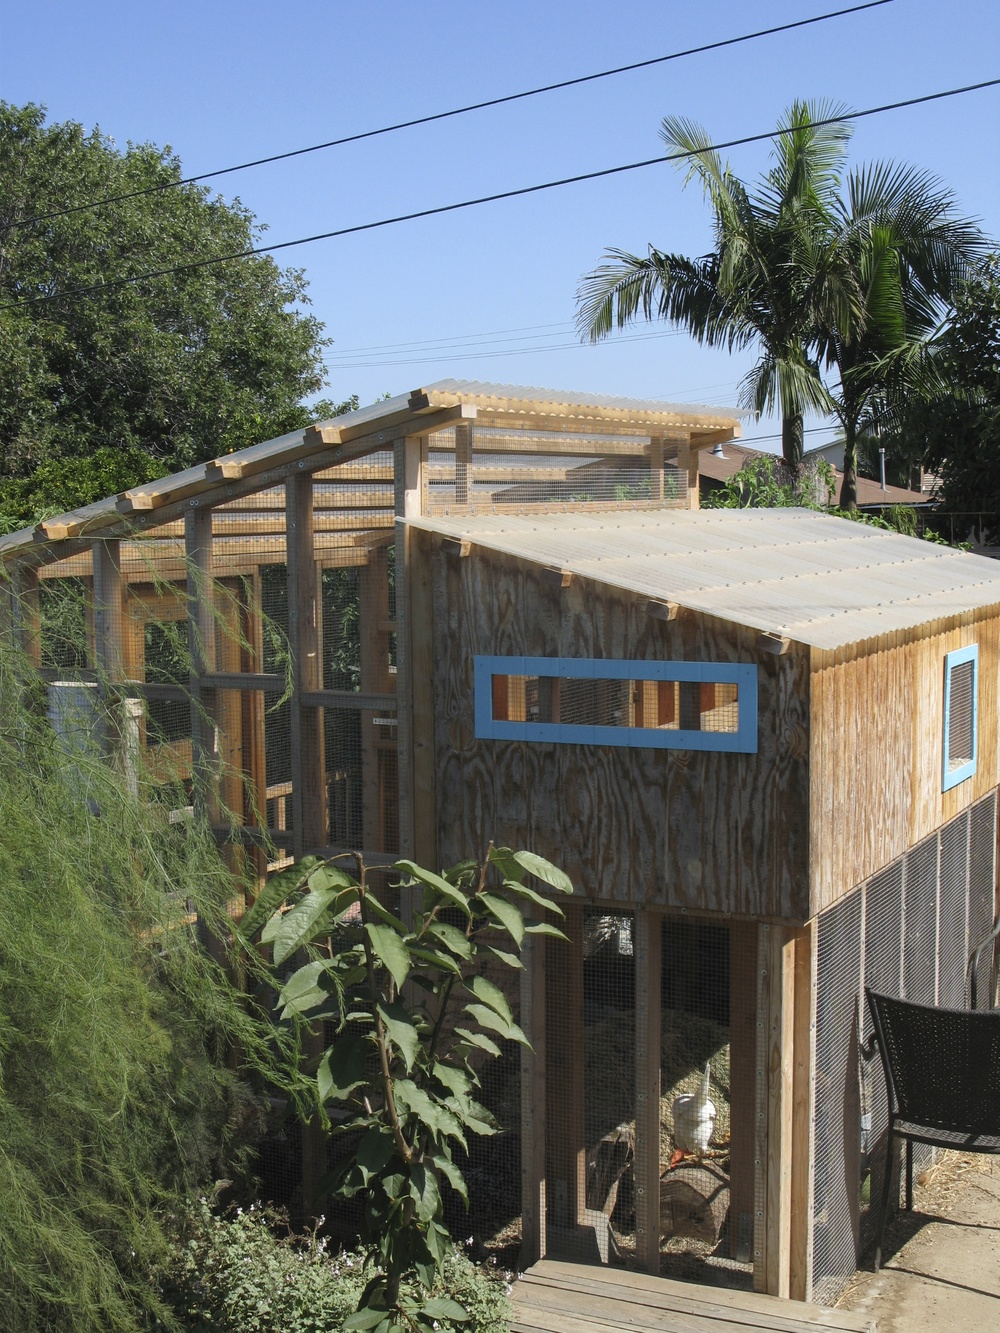 3-level coop designed to be good for the chickens and the flockster.